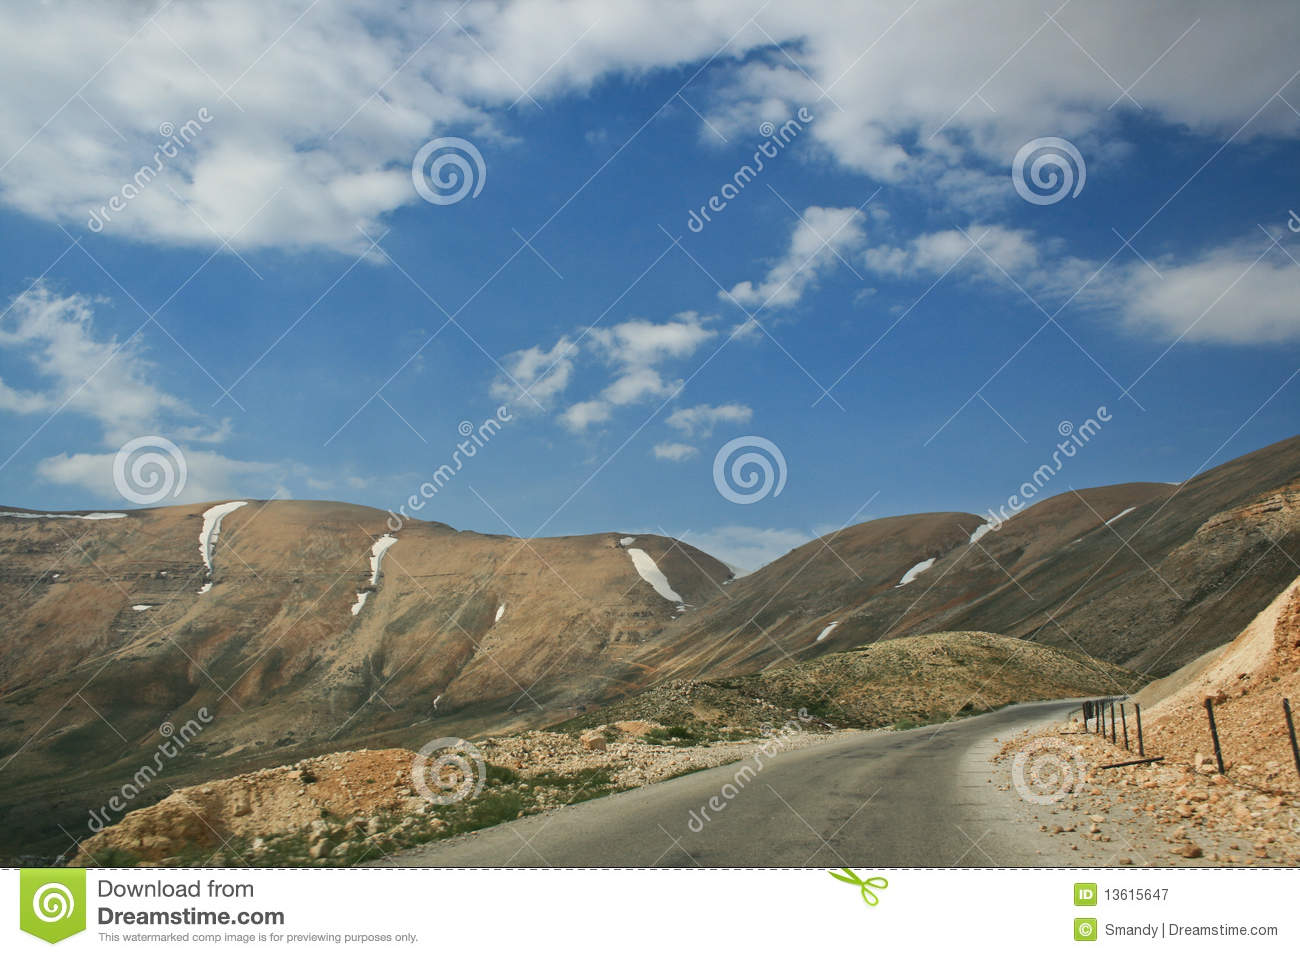 Mountain Road On The Highest Peak Of Lebanon Royalty Free Stock.